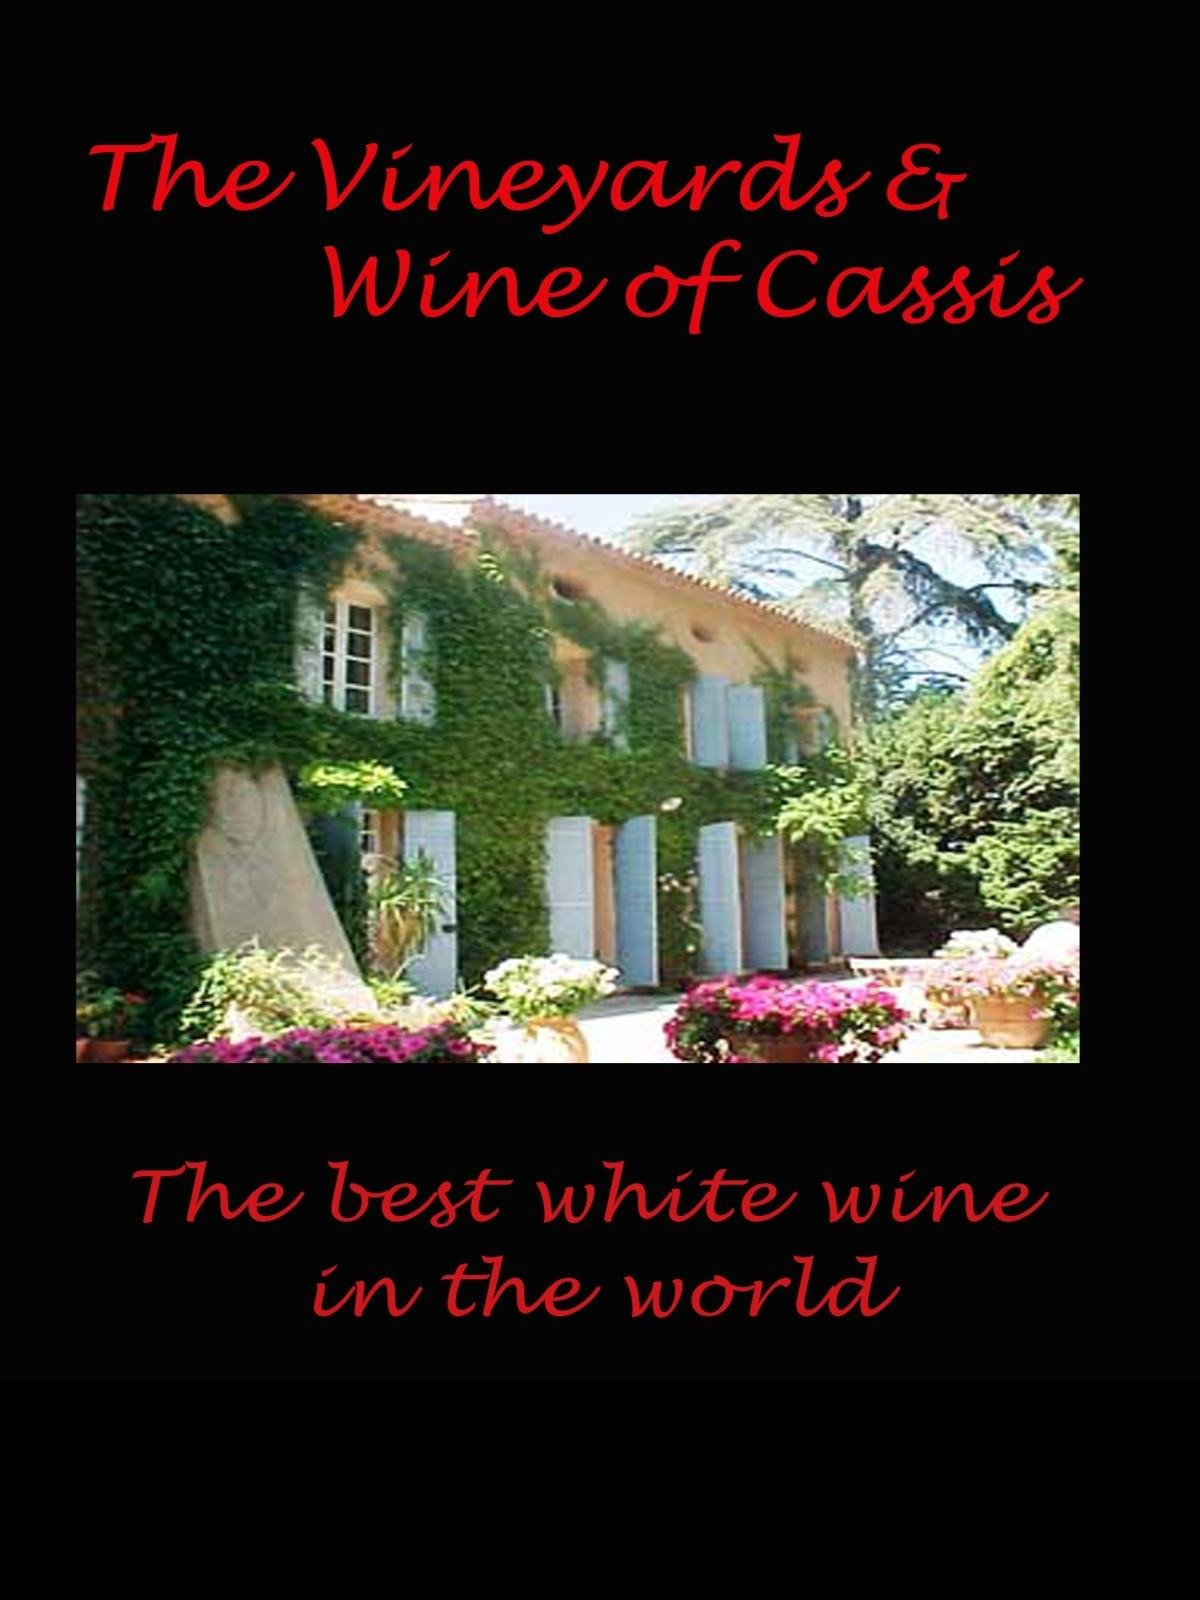 The Vineyards and Wine of Cassis - The best white wine in the world